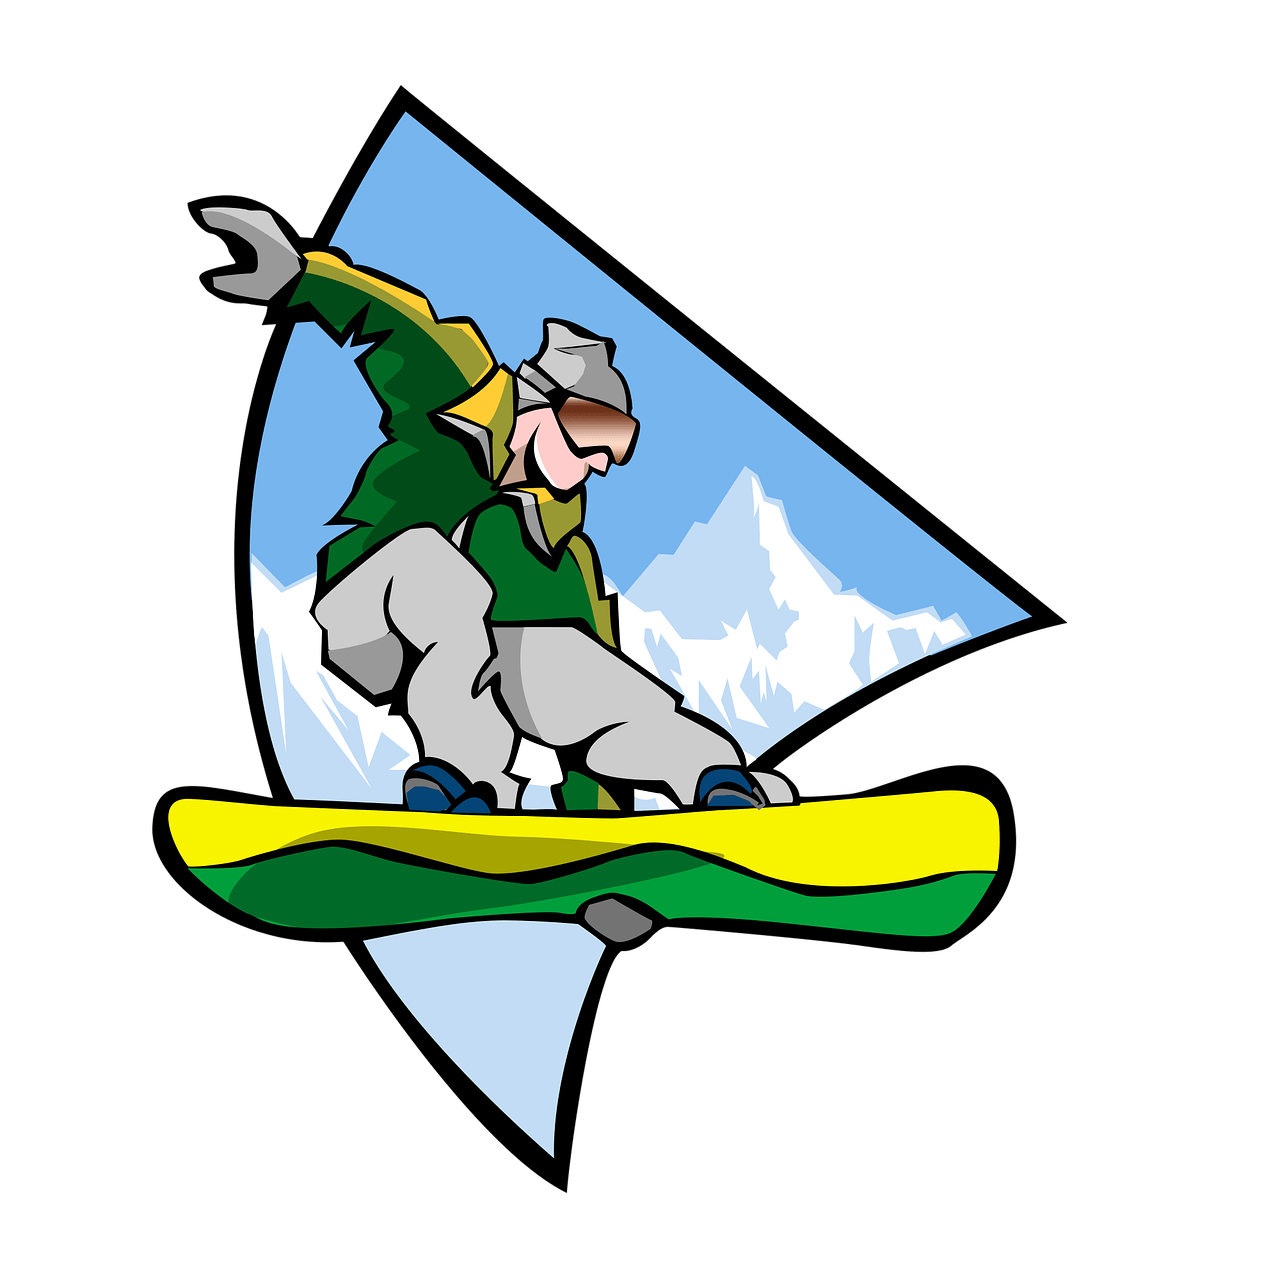 clip art royalty free Sports man transparent png. Snowboarding clipart.